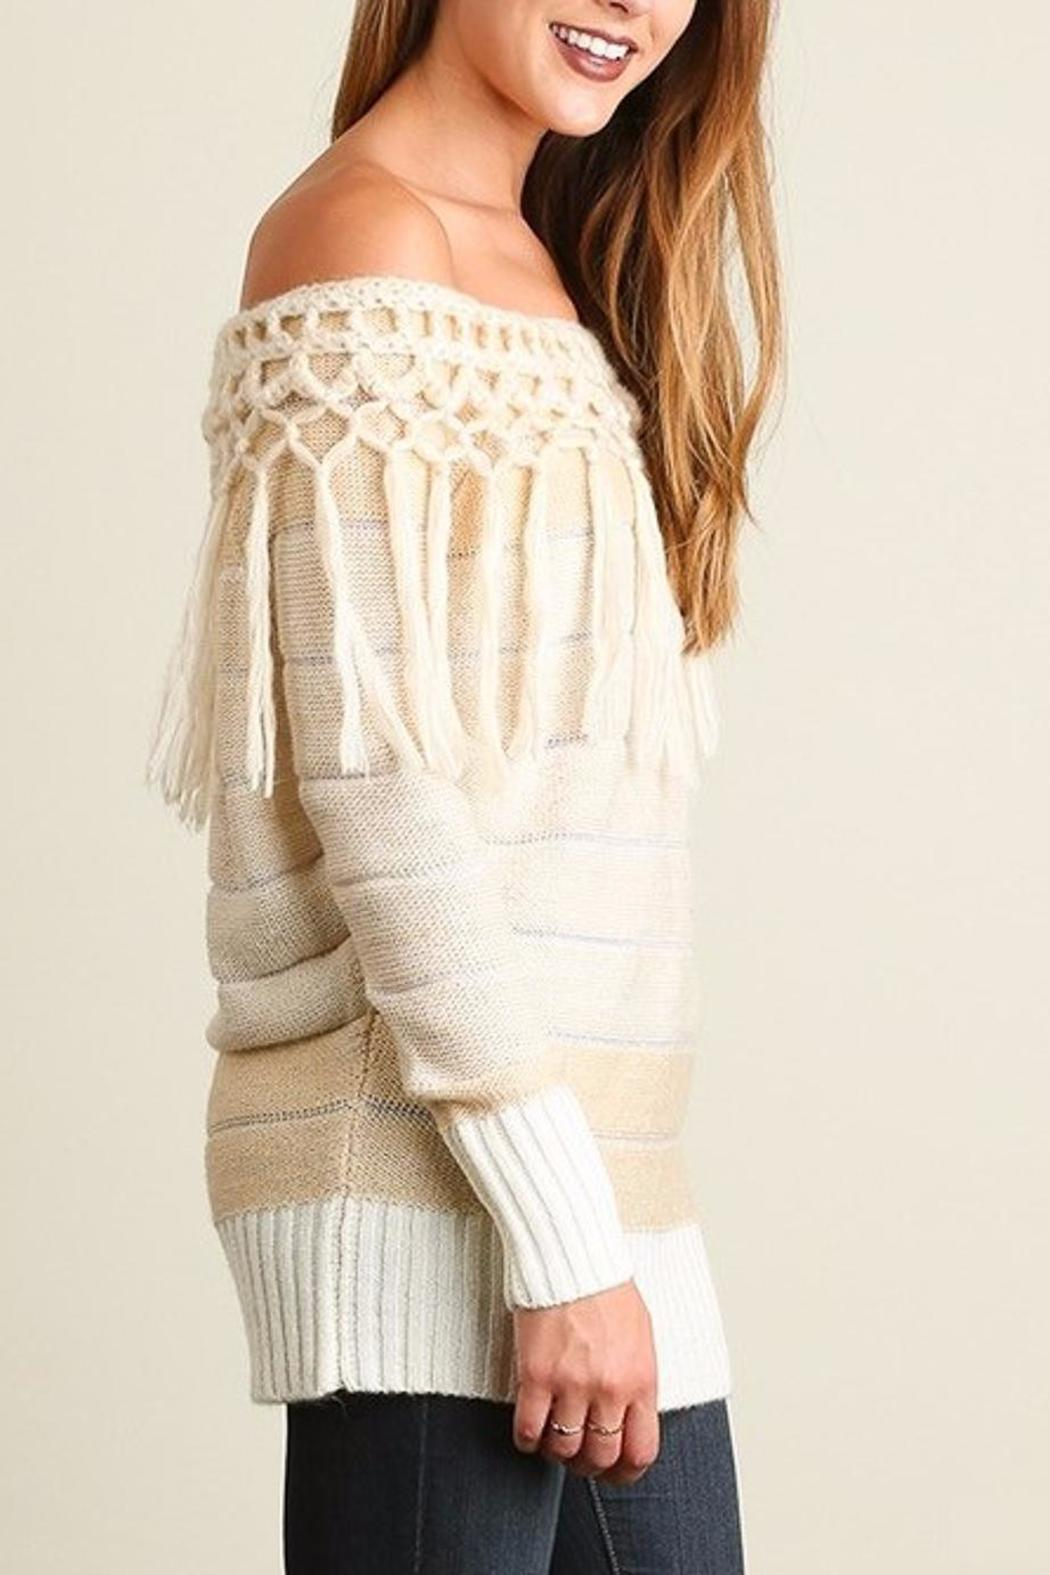 People Outfitter Tassels Tunic Sweater - Side Cropped Image